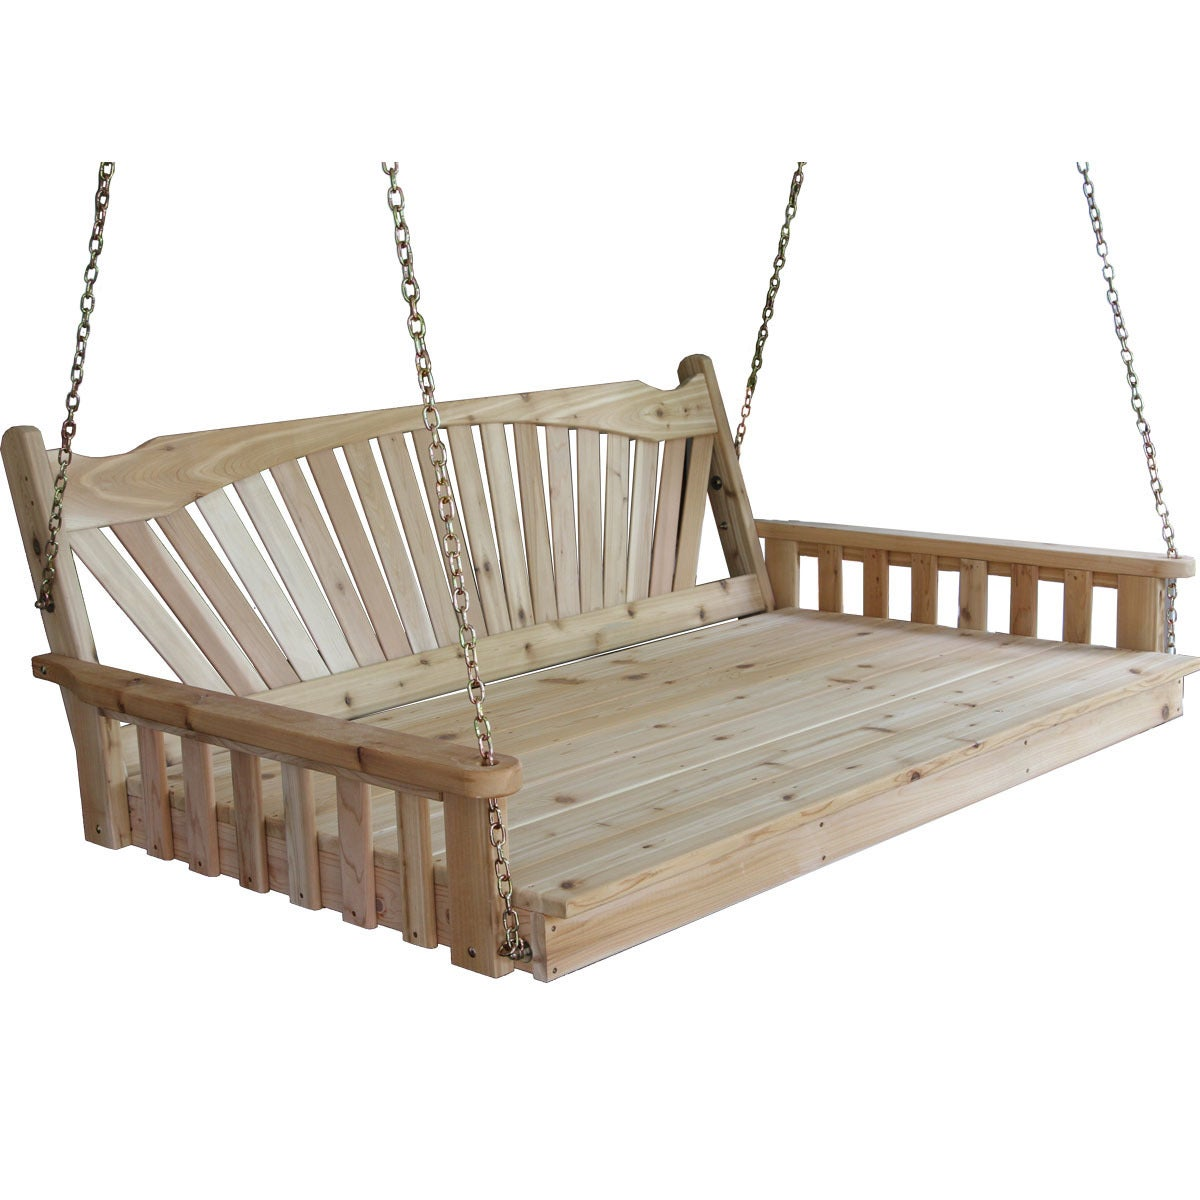 Pine Fanback English Swing Bed Overstock 10333672